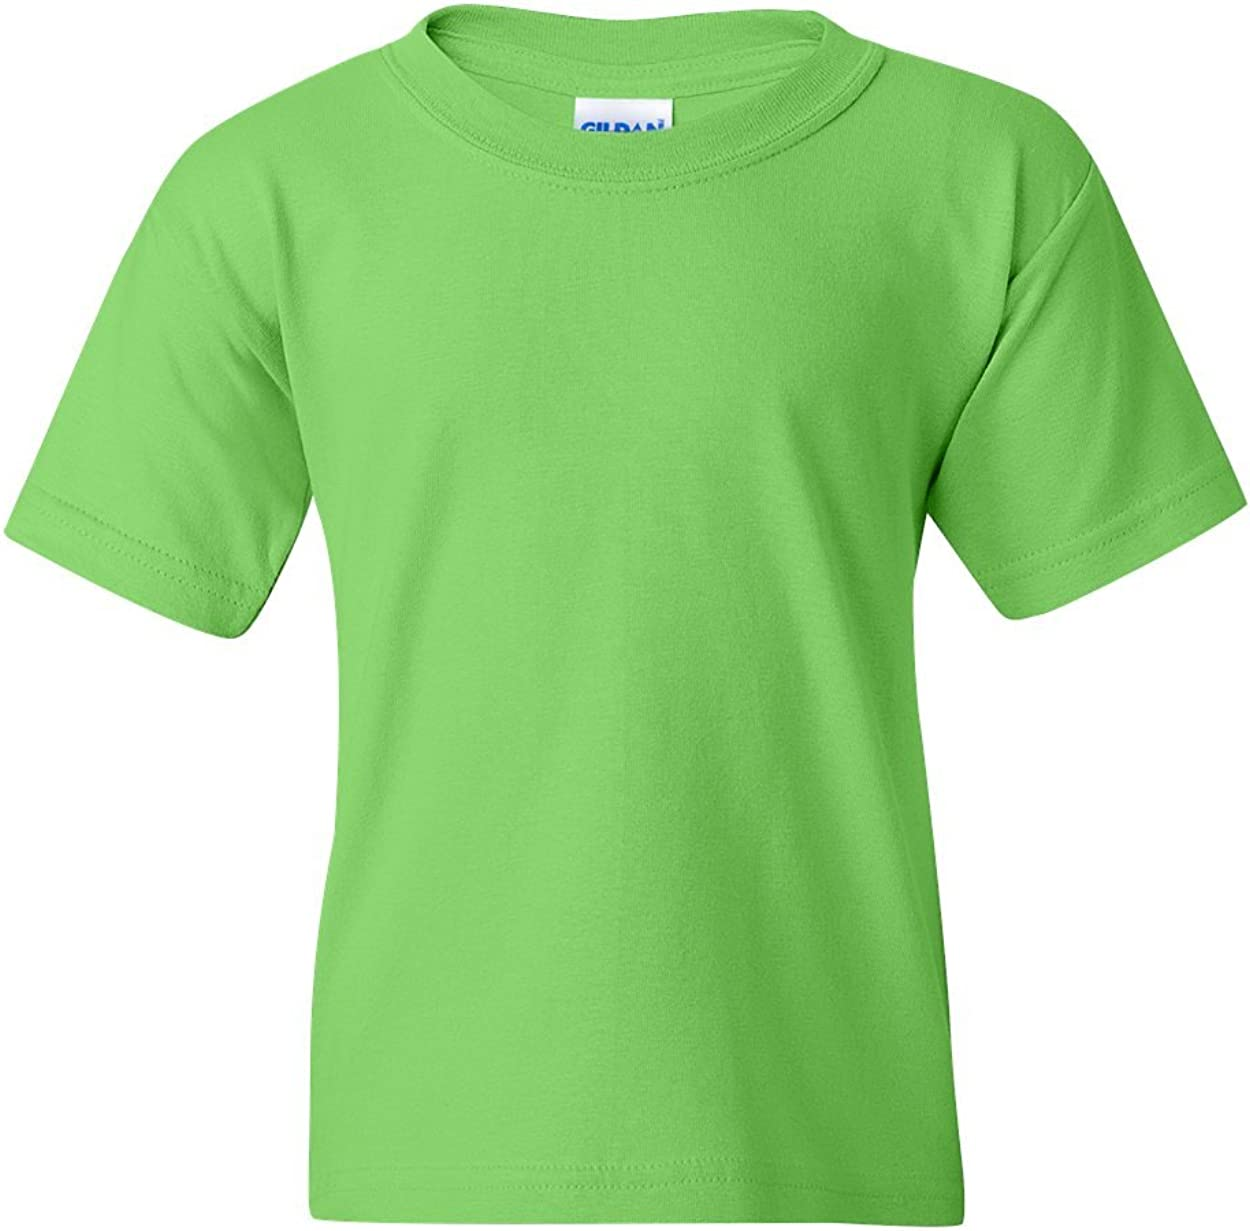 Heavy Cotton T-Shirt (G500B) Lime, M (Pack of 12)